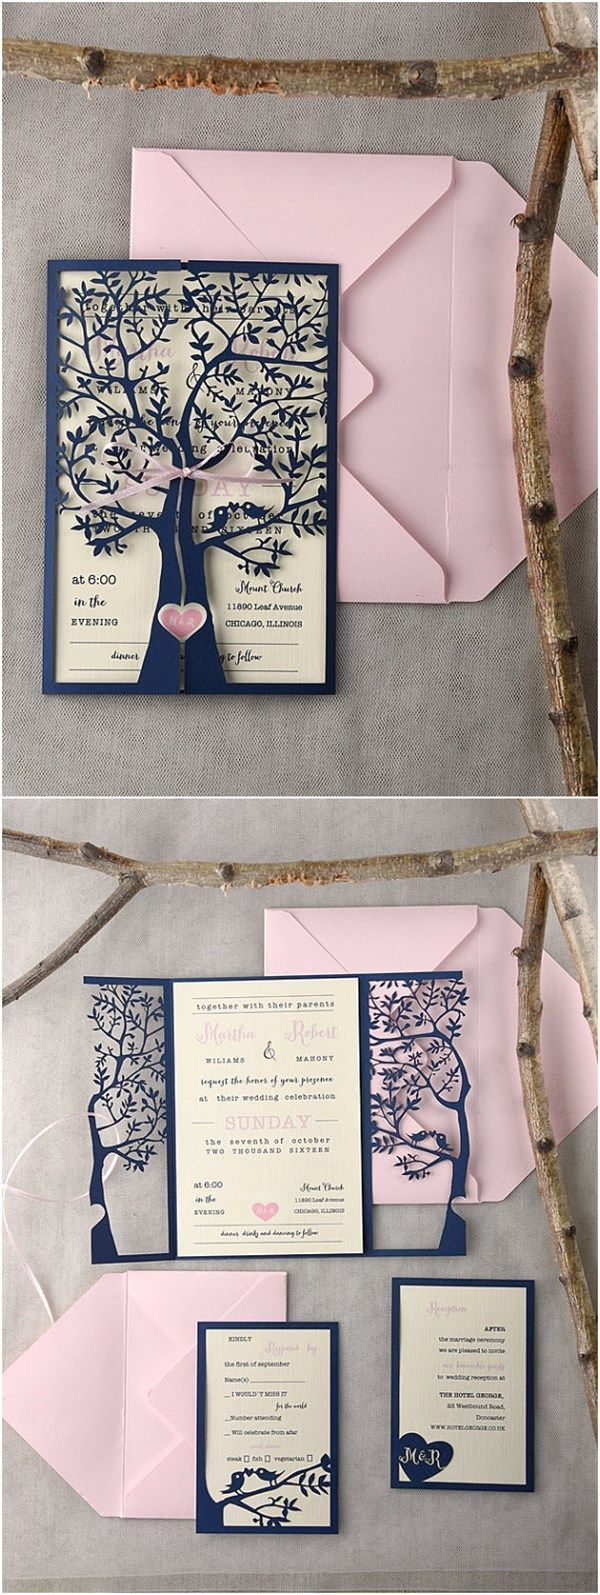 This Wedding Invitation Is Stunning 15 Our Absolutely Favorite Rustic Invitations Http